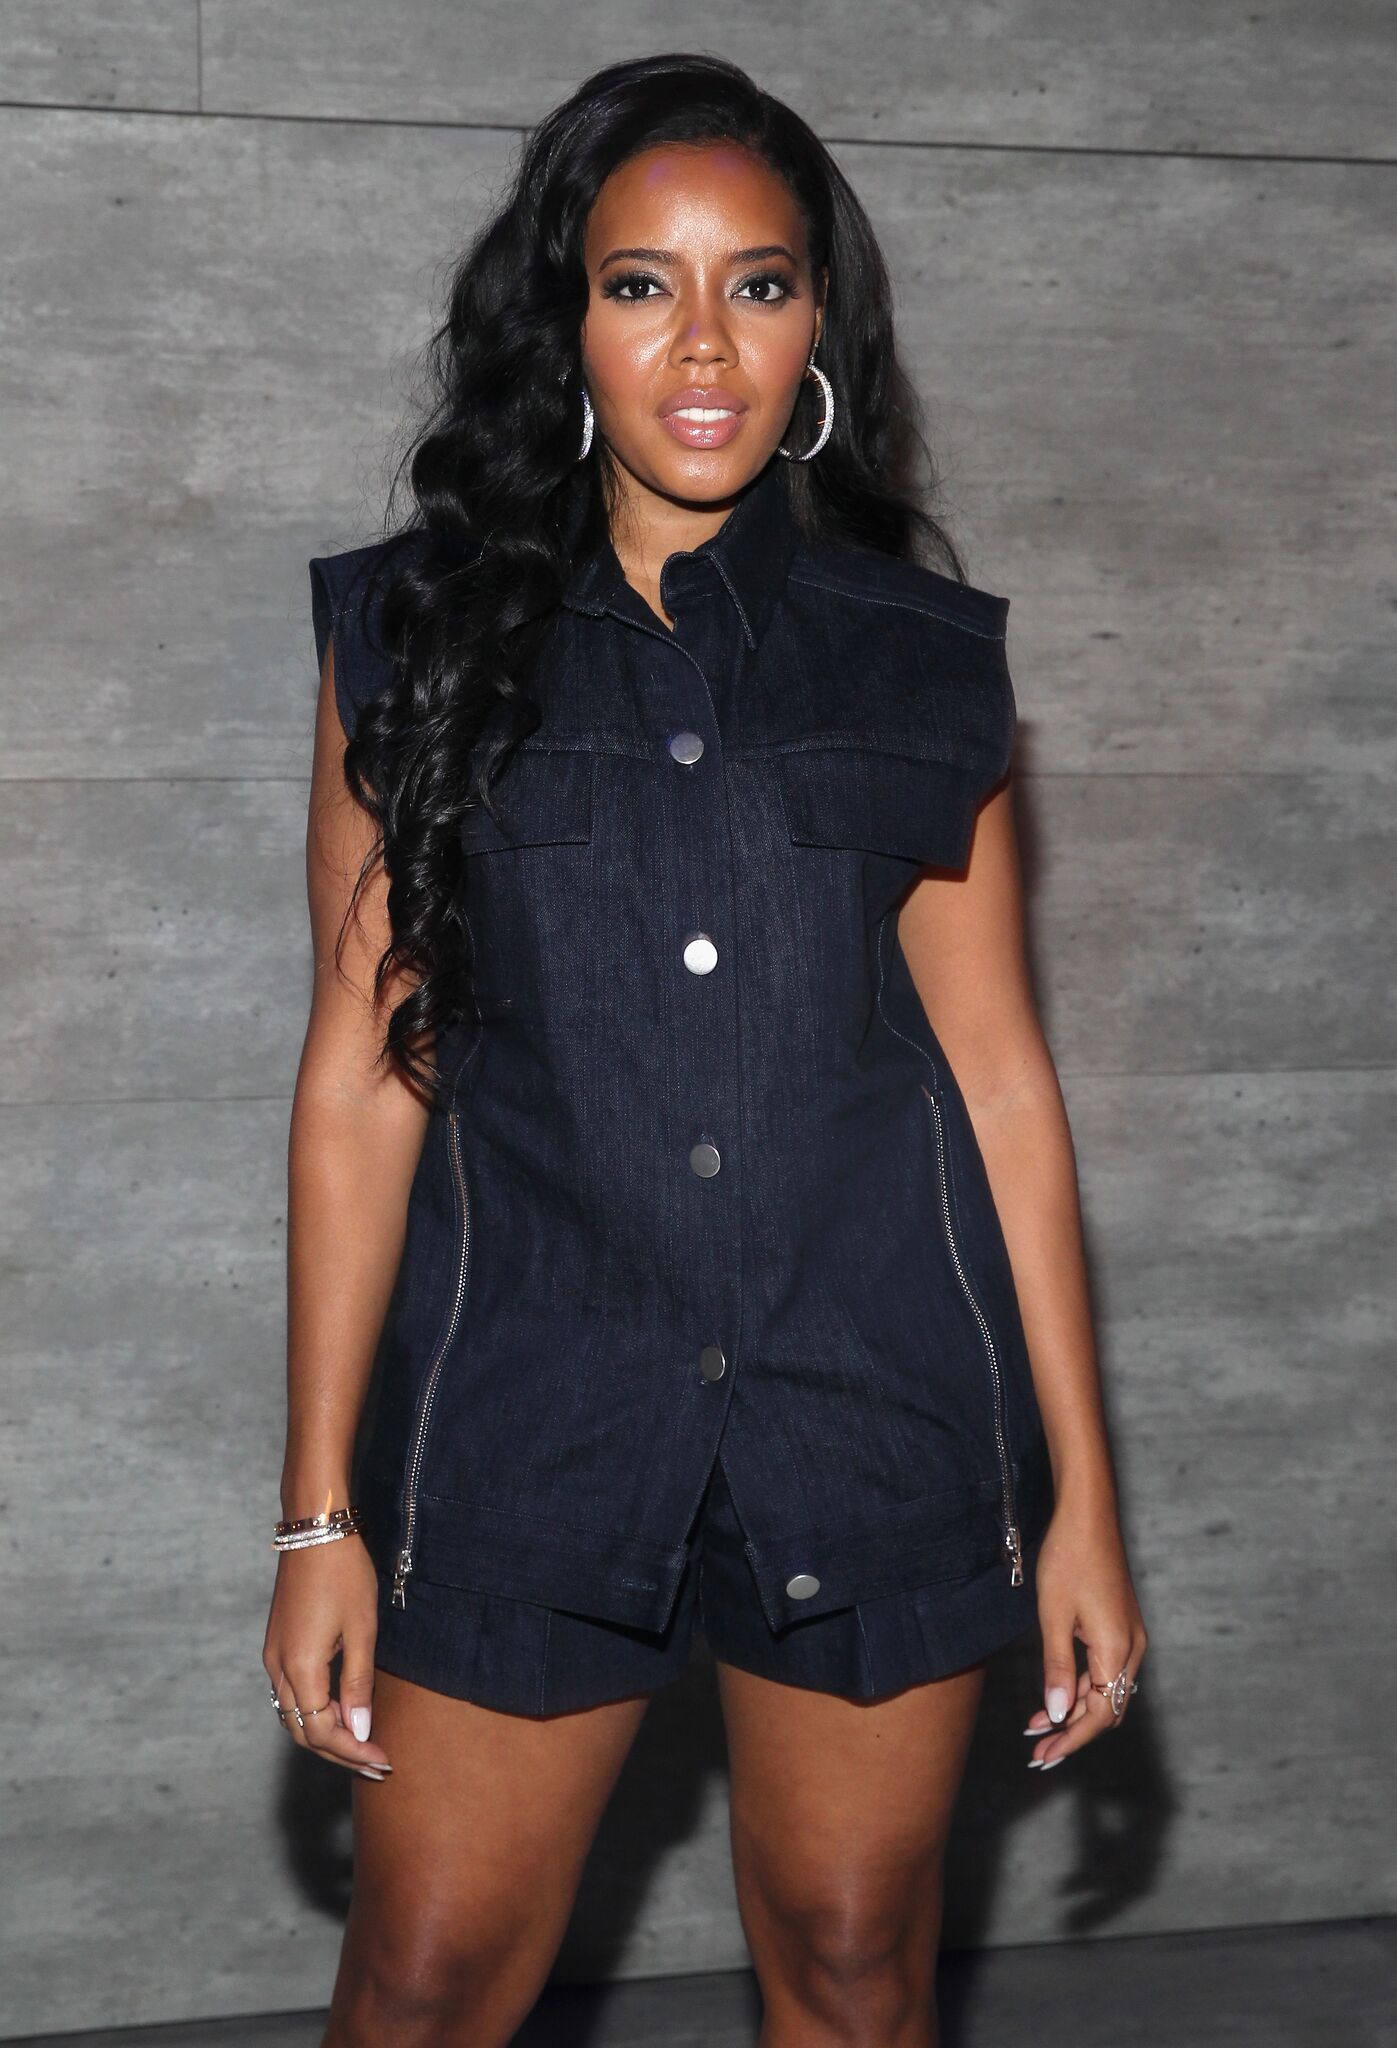 Angela Simmons attends the Charlotte Ronson fashion show during Mercedes-Benz Fashion Week Fall 2015 l Getty Images